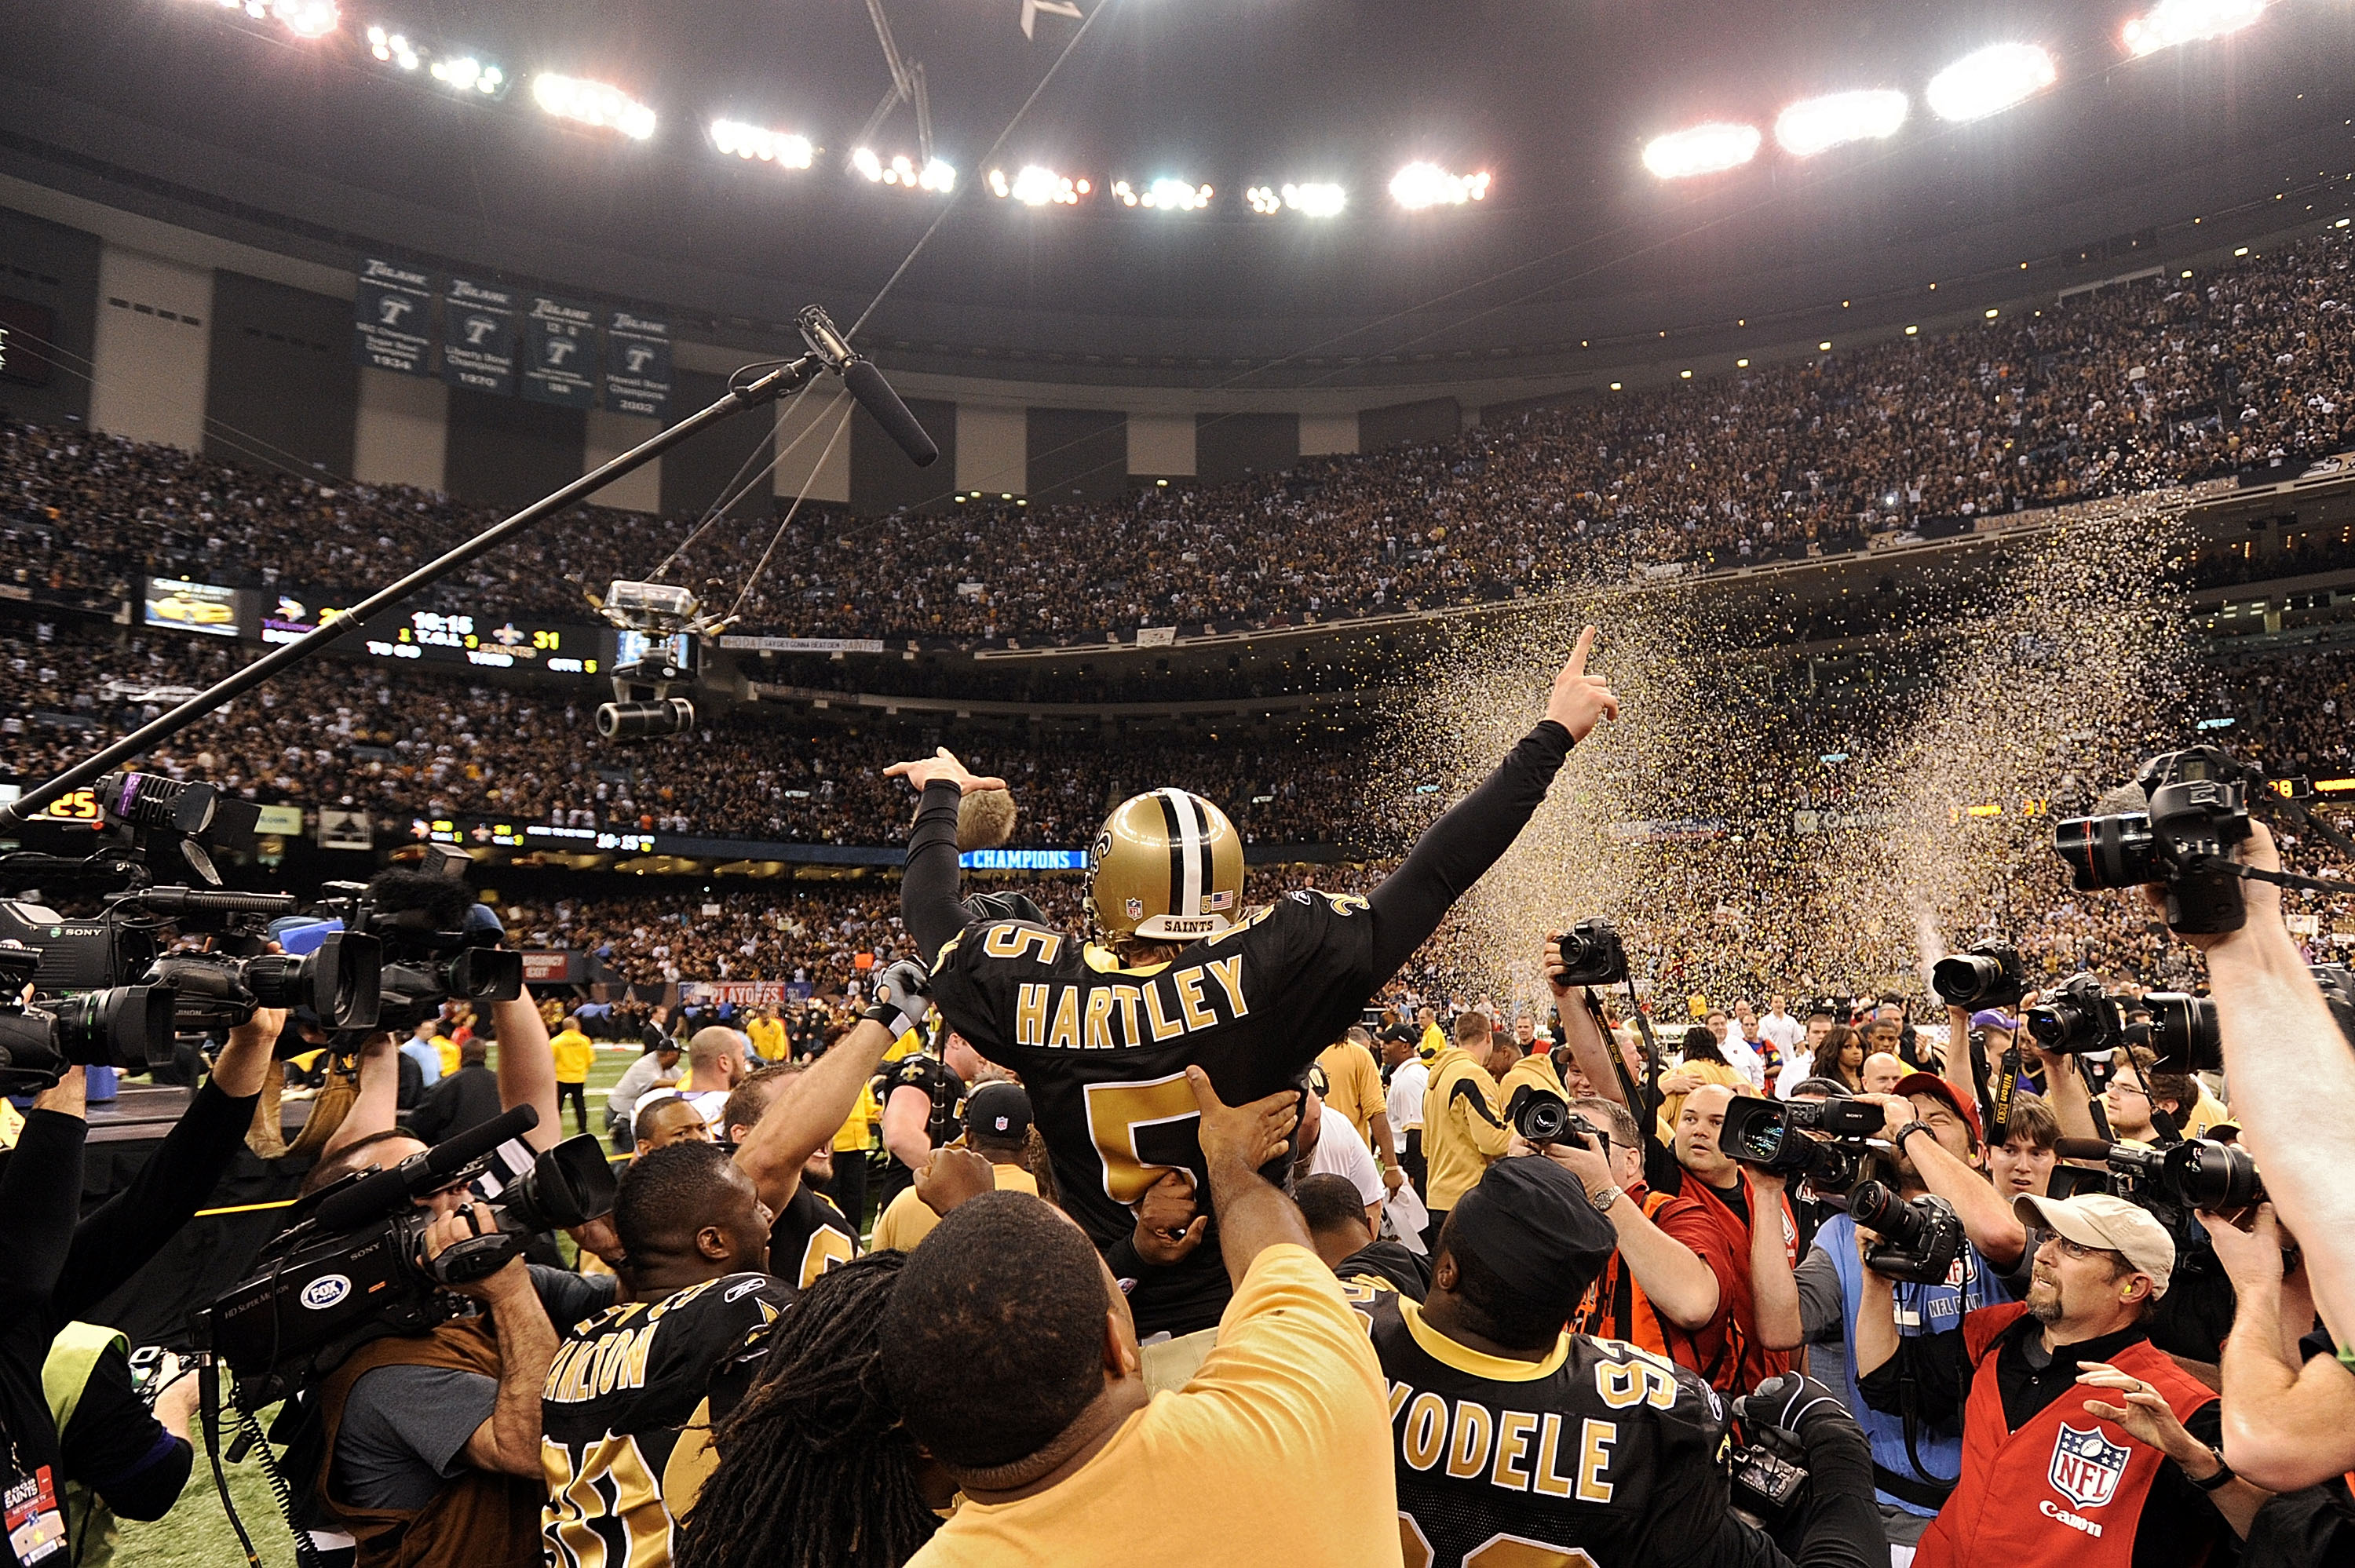 NEW ORLEANS - JANUARY 24:  Kicker Garrett Hartley #5 of the New Orleans Saints is mobbed by teammates after hitting a gaming winning field goal in overtime against the Minnesota Vikings to win the NFC Championship Game at the Louisiana Superdome on Januar